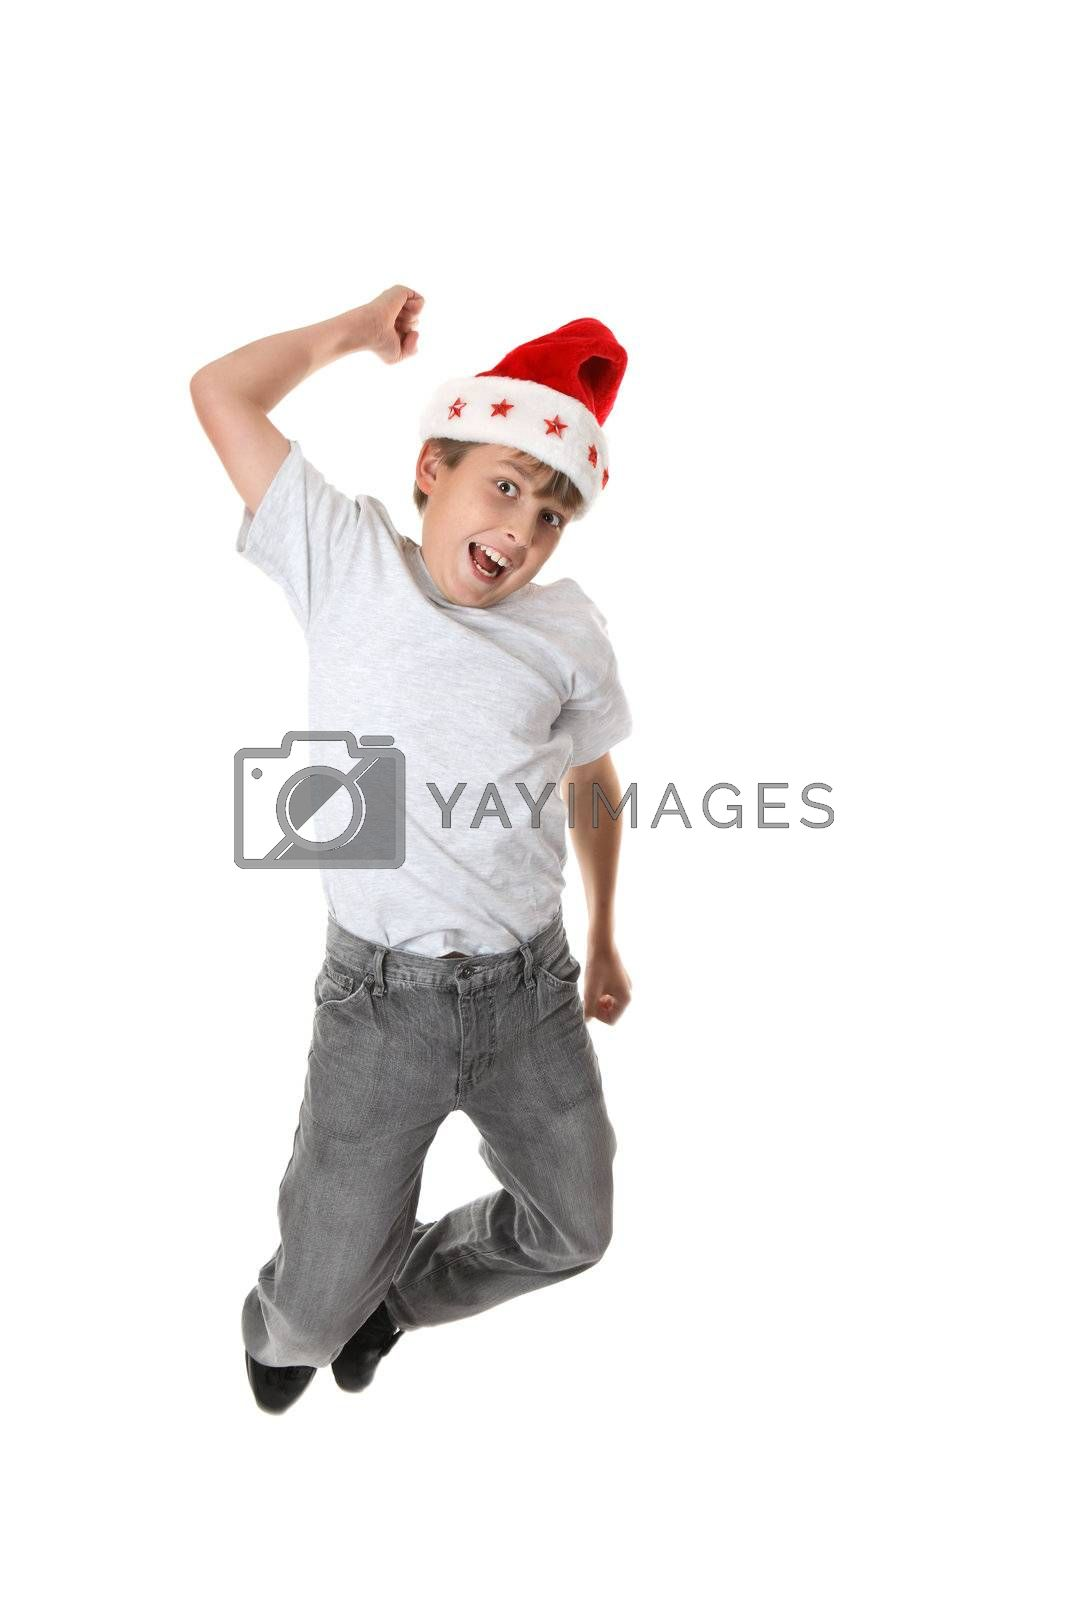 A child leaping into the air in celebration of Christmas